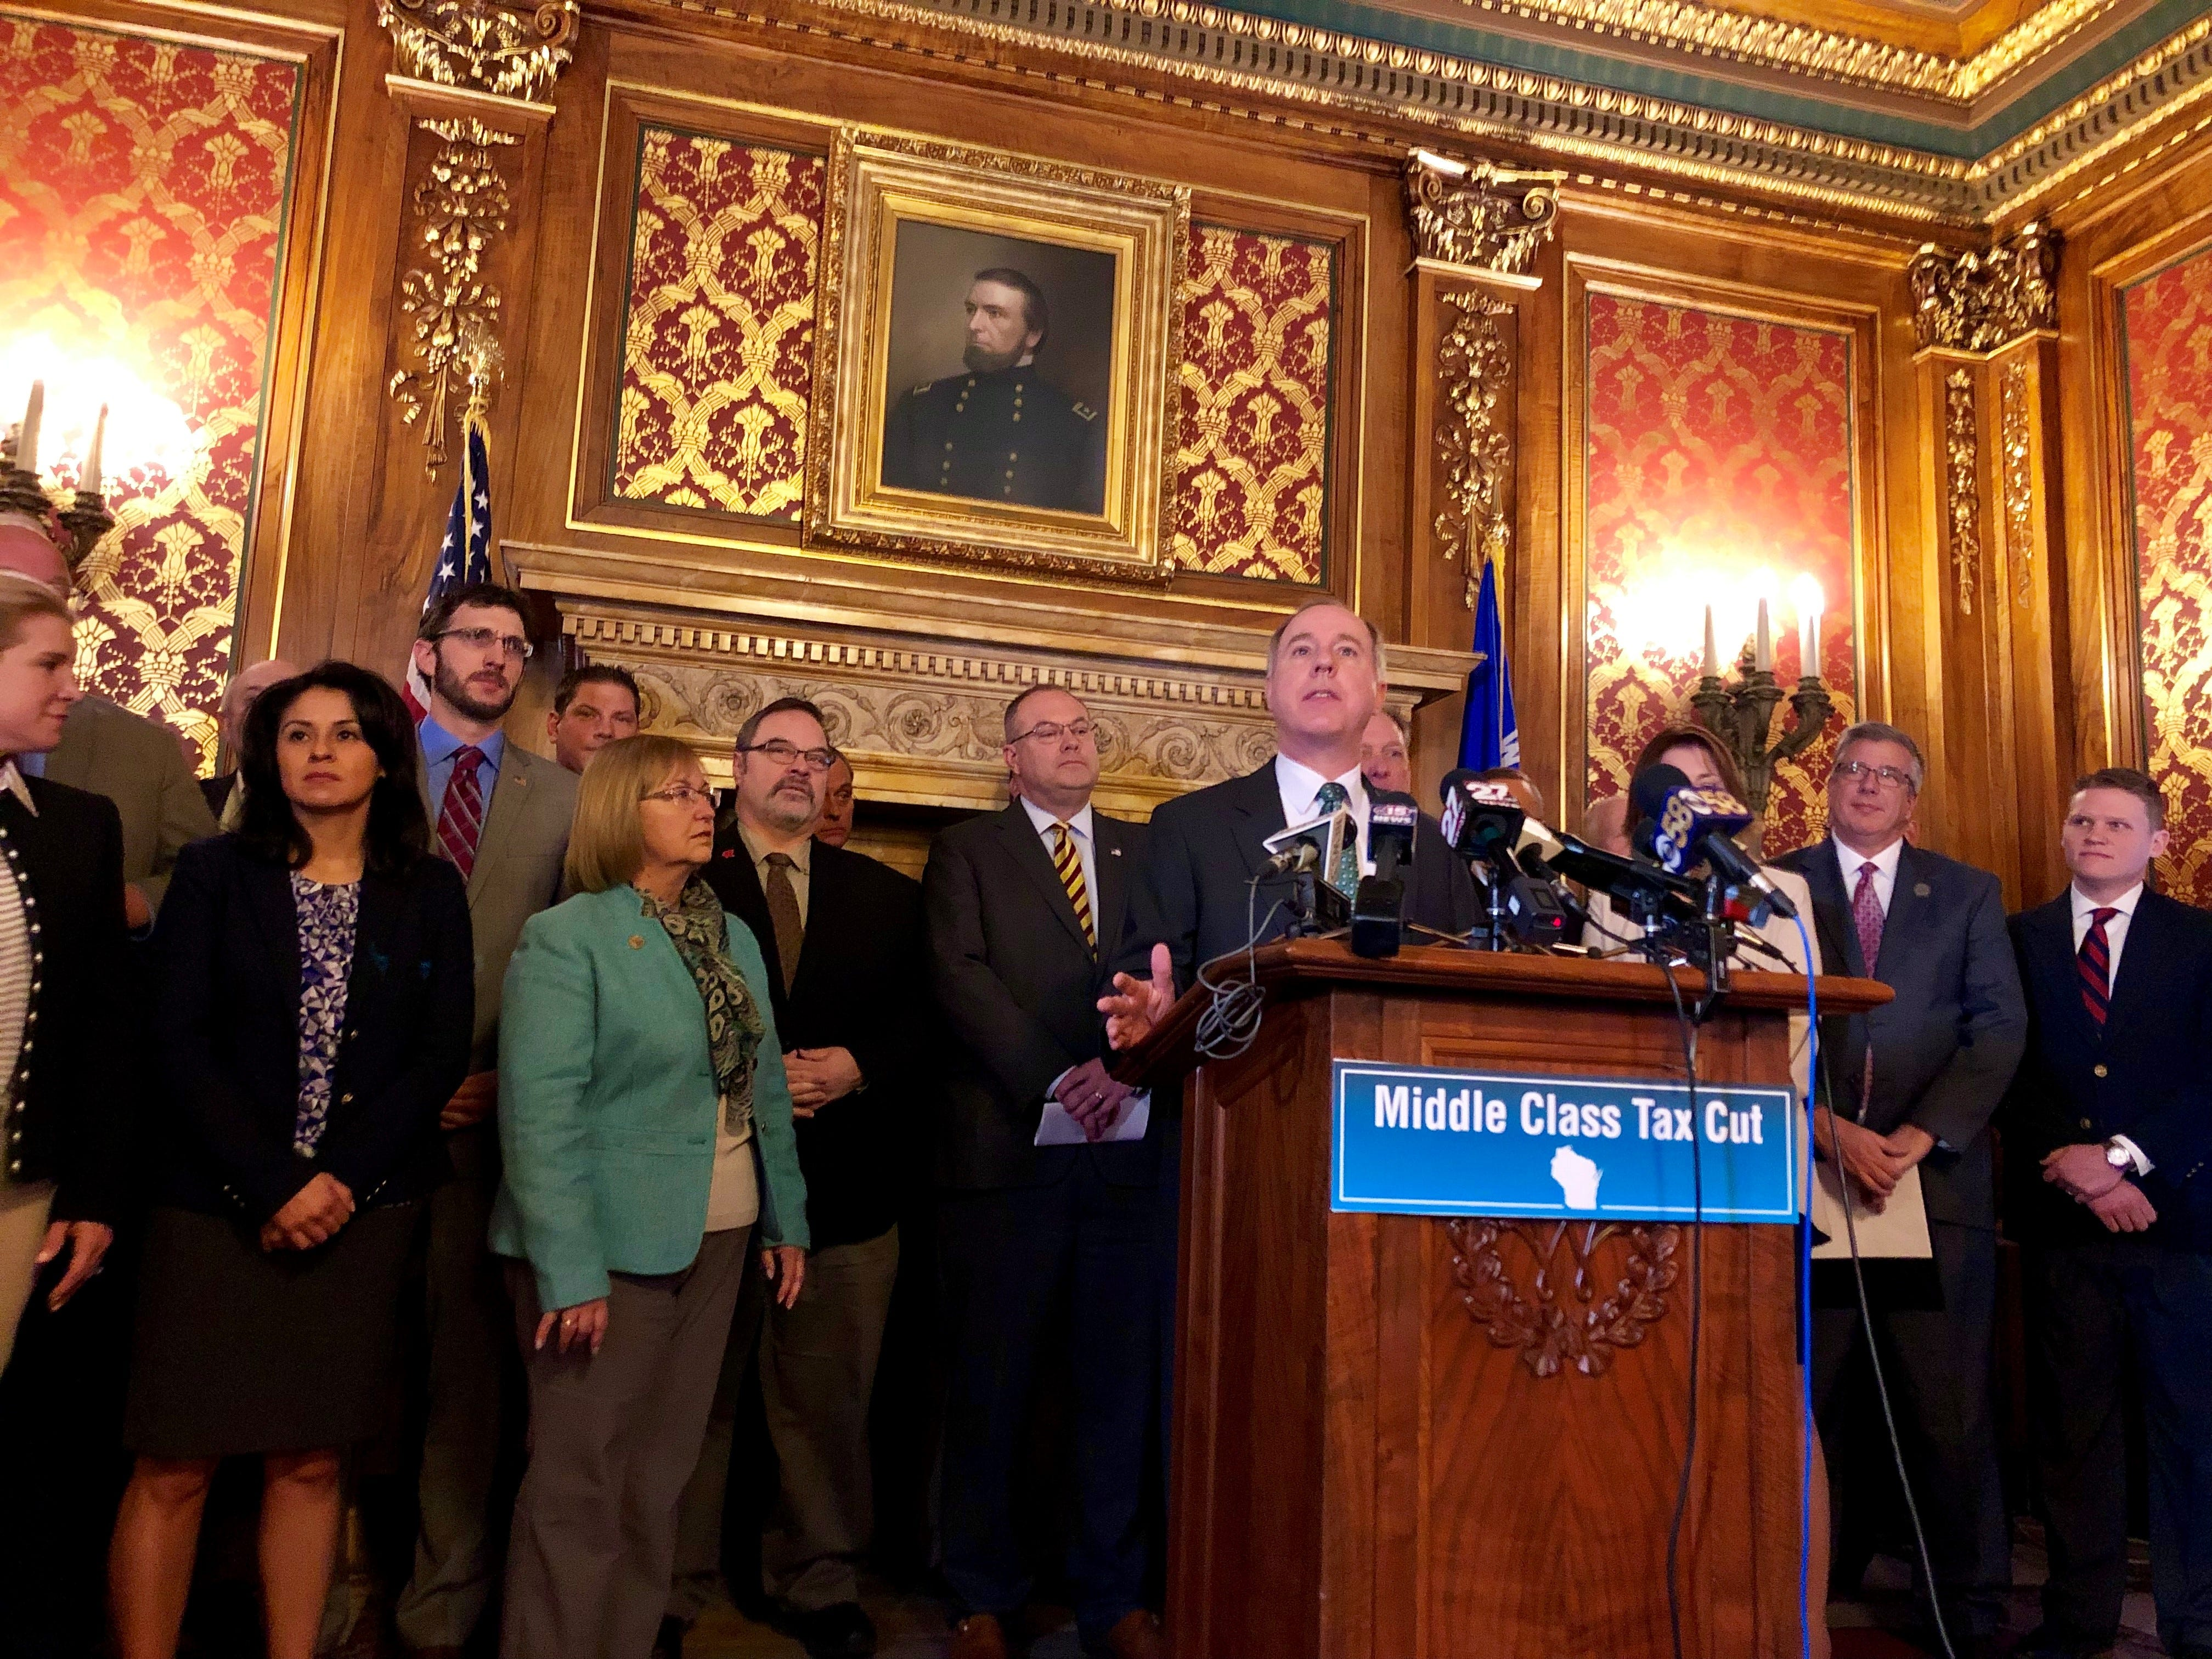 Assembly Republicans propose plan to pay for Tony Evers' tax cut   Milwaukee Journal Sentinel